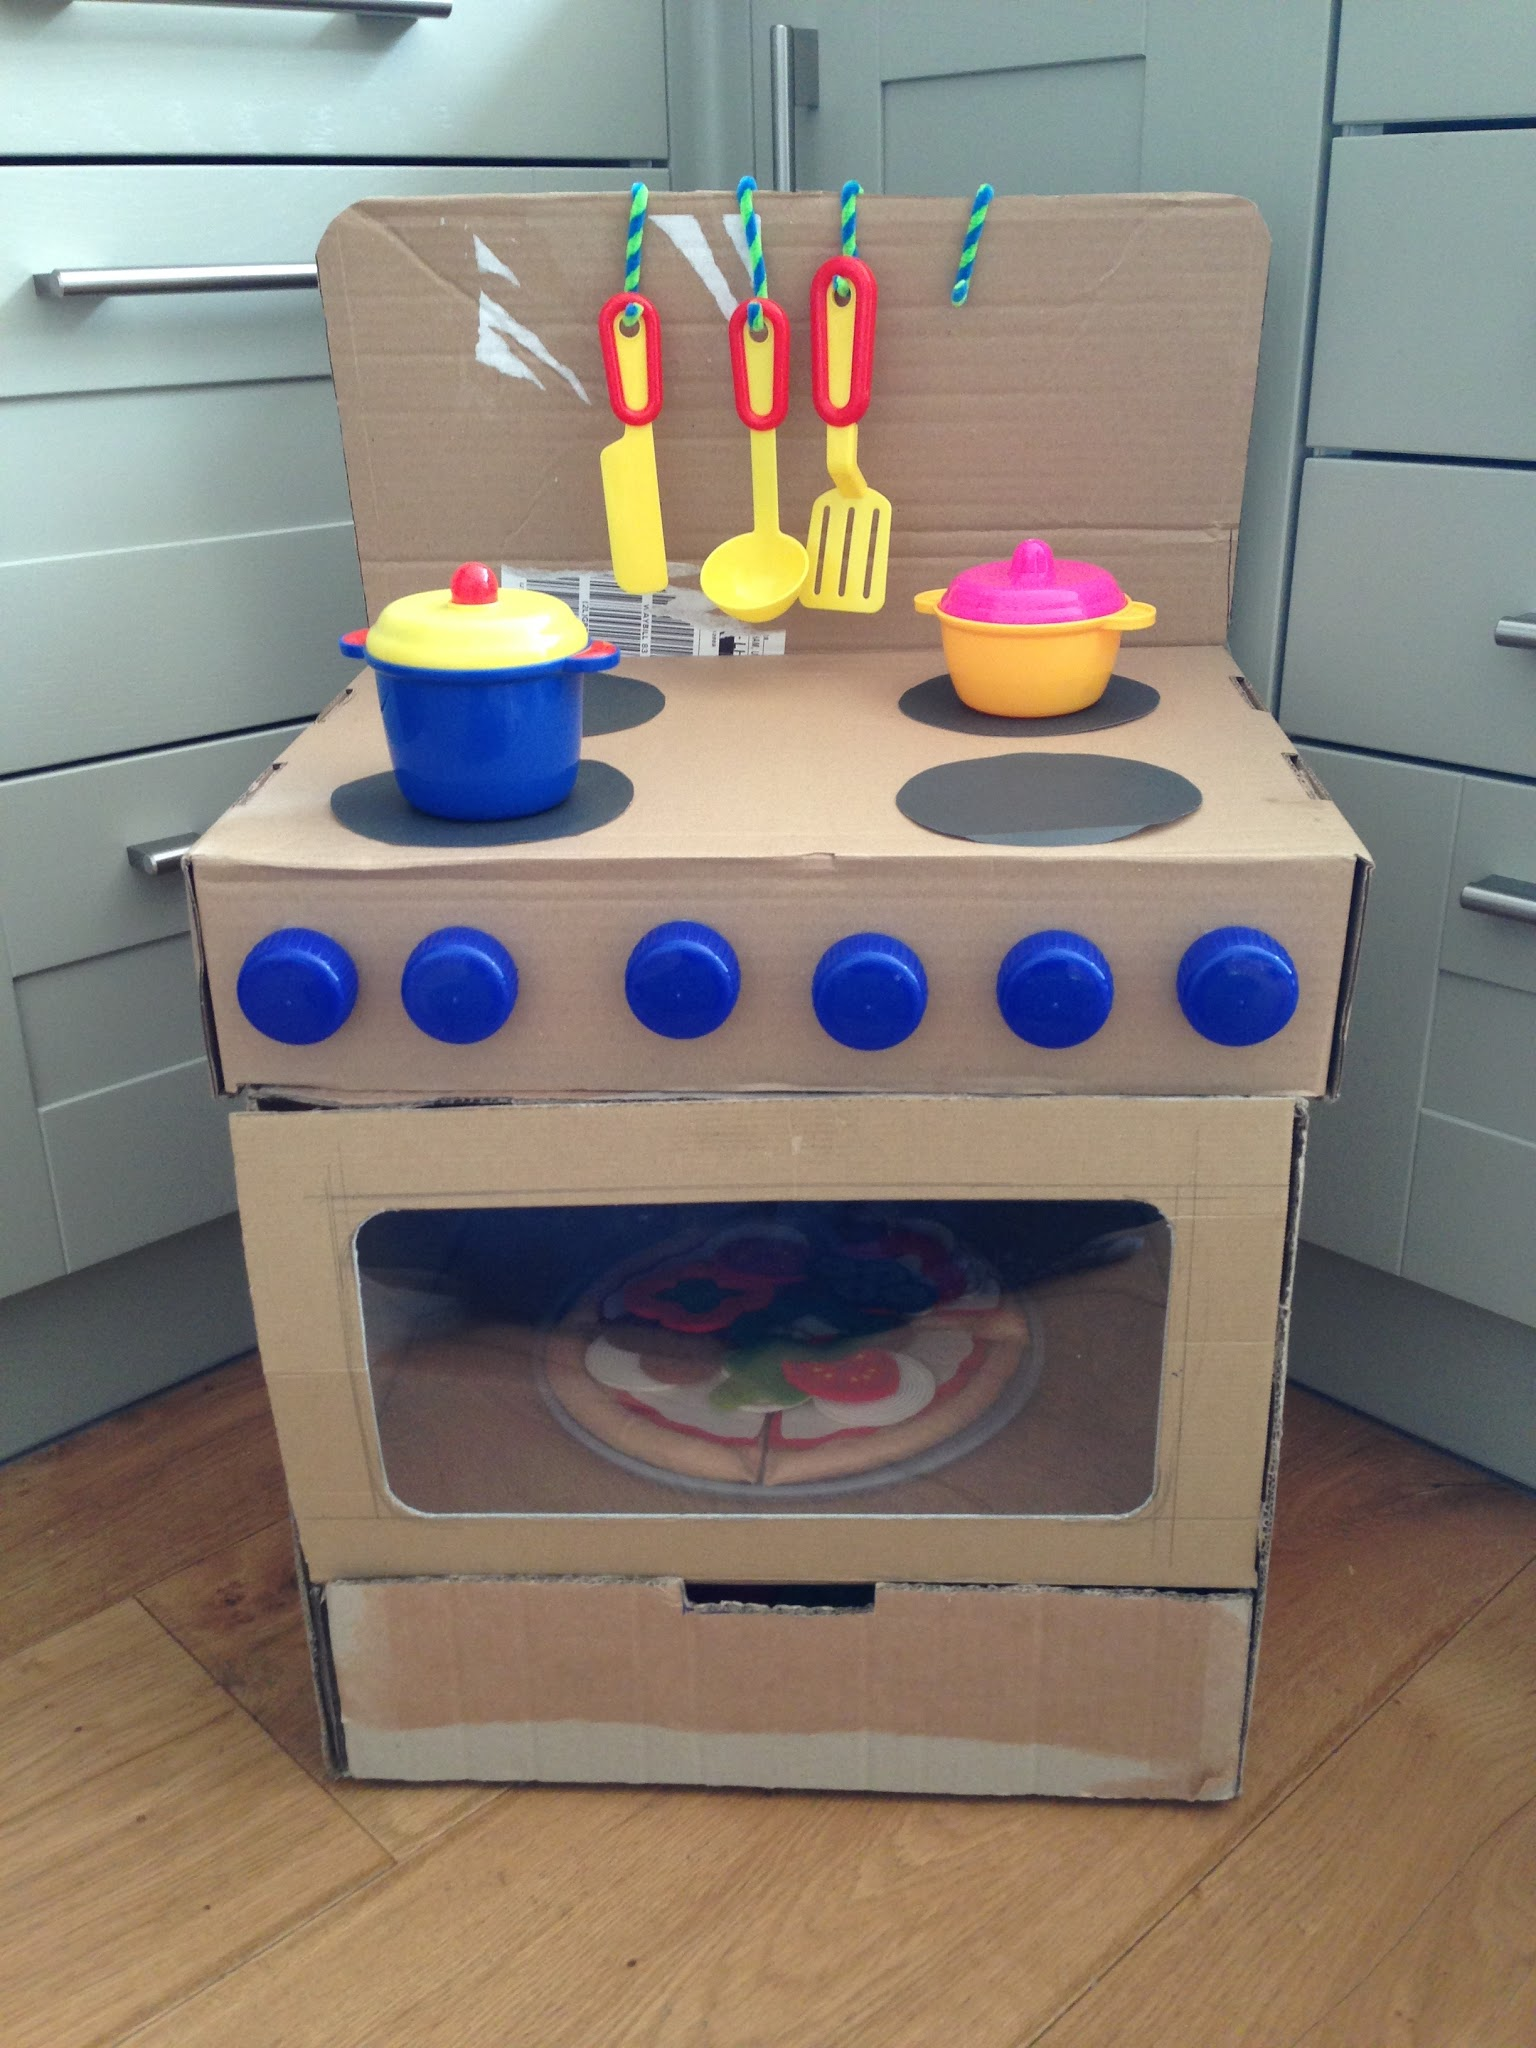 2 littlefaces diy cardboard box oven for Kitchen crafts to make